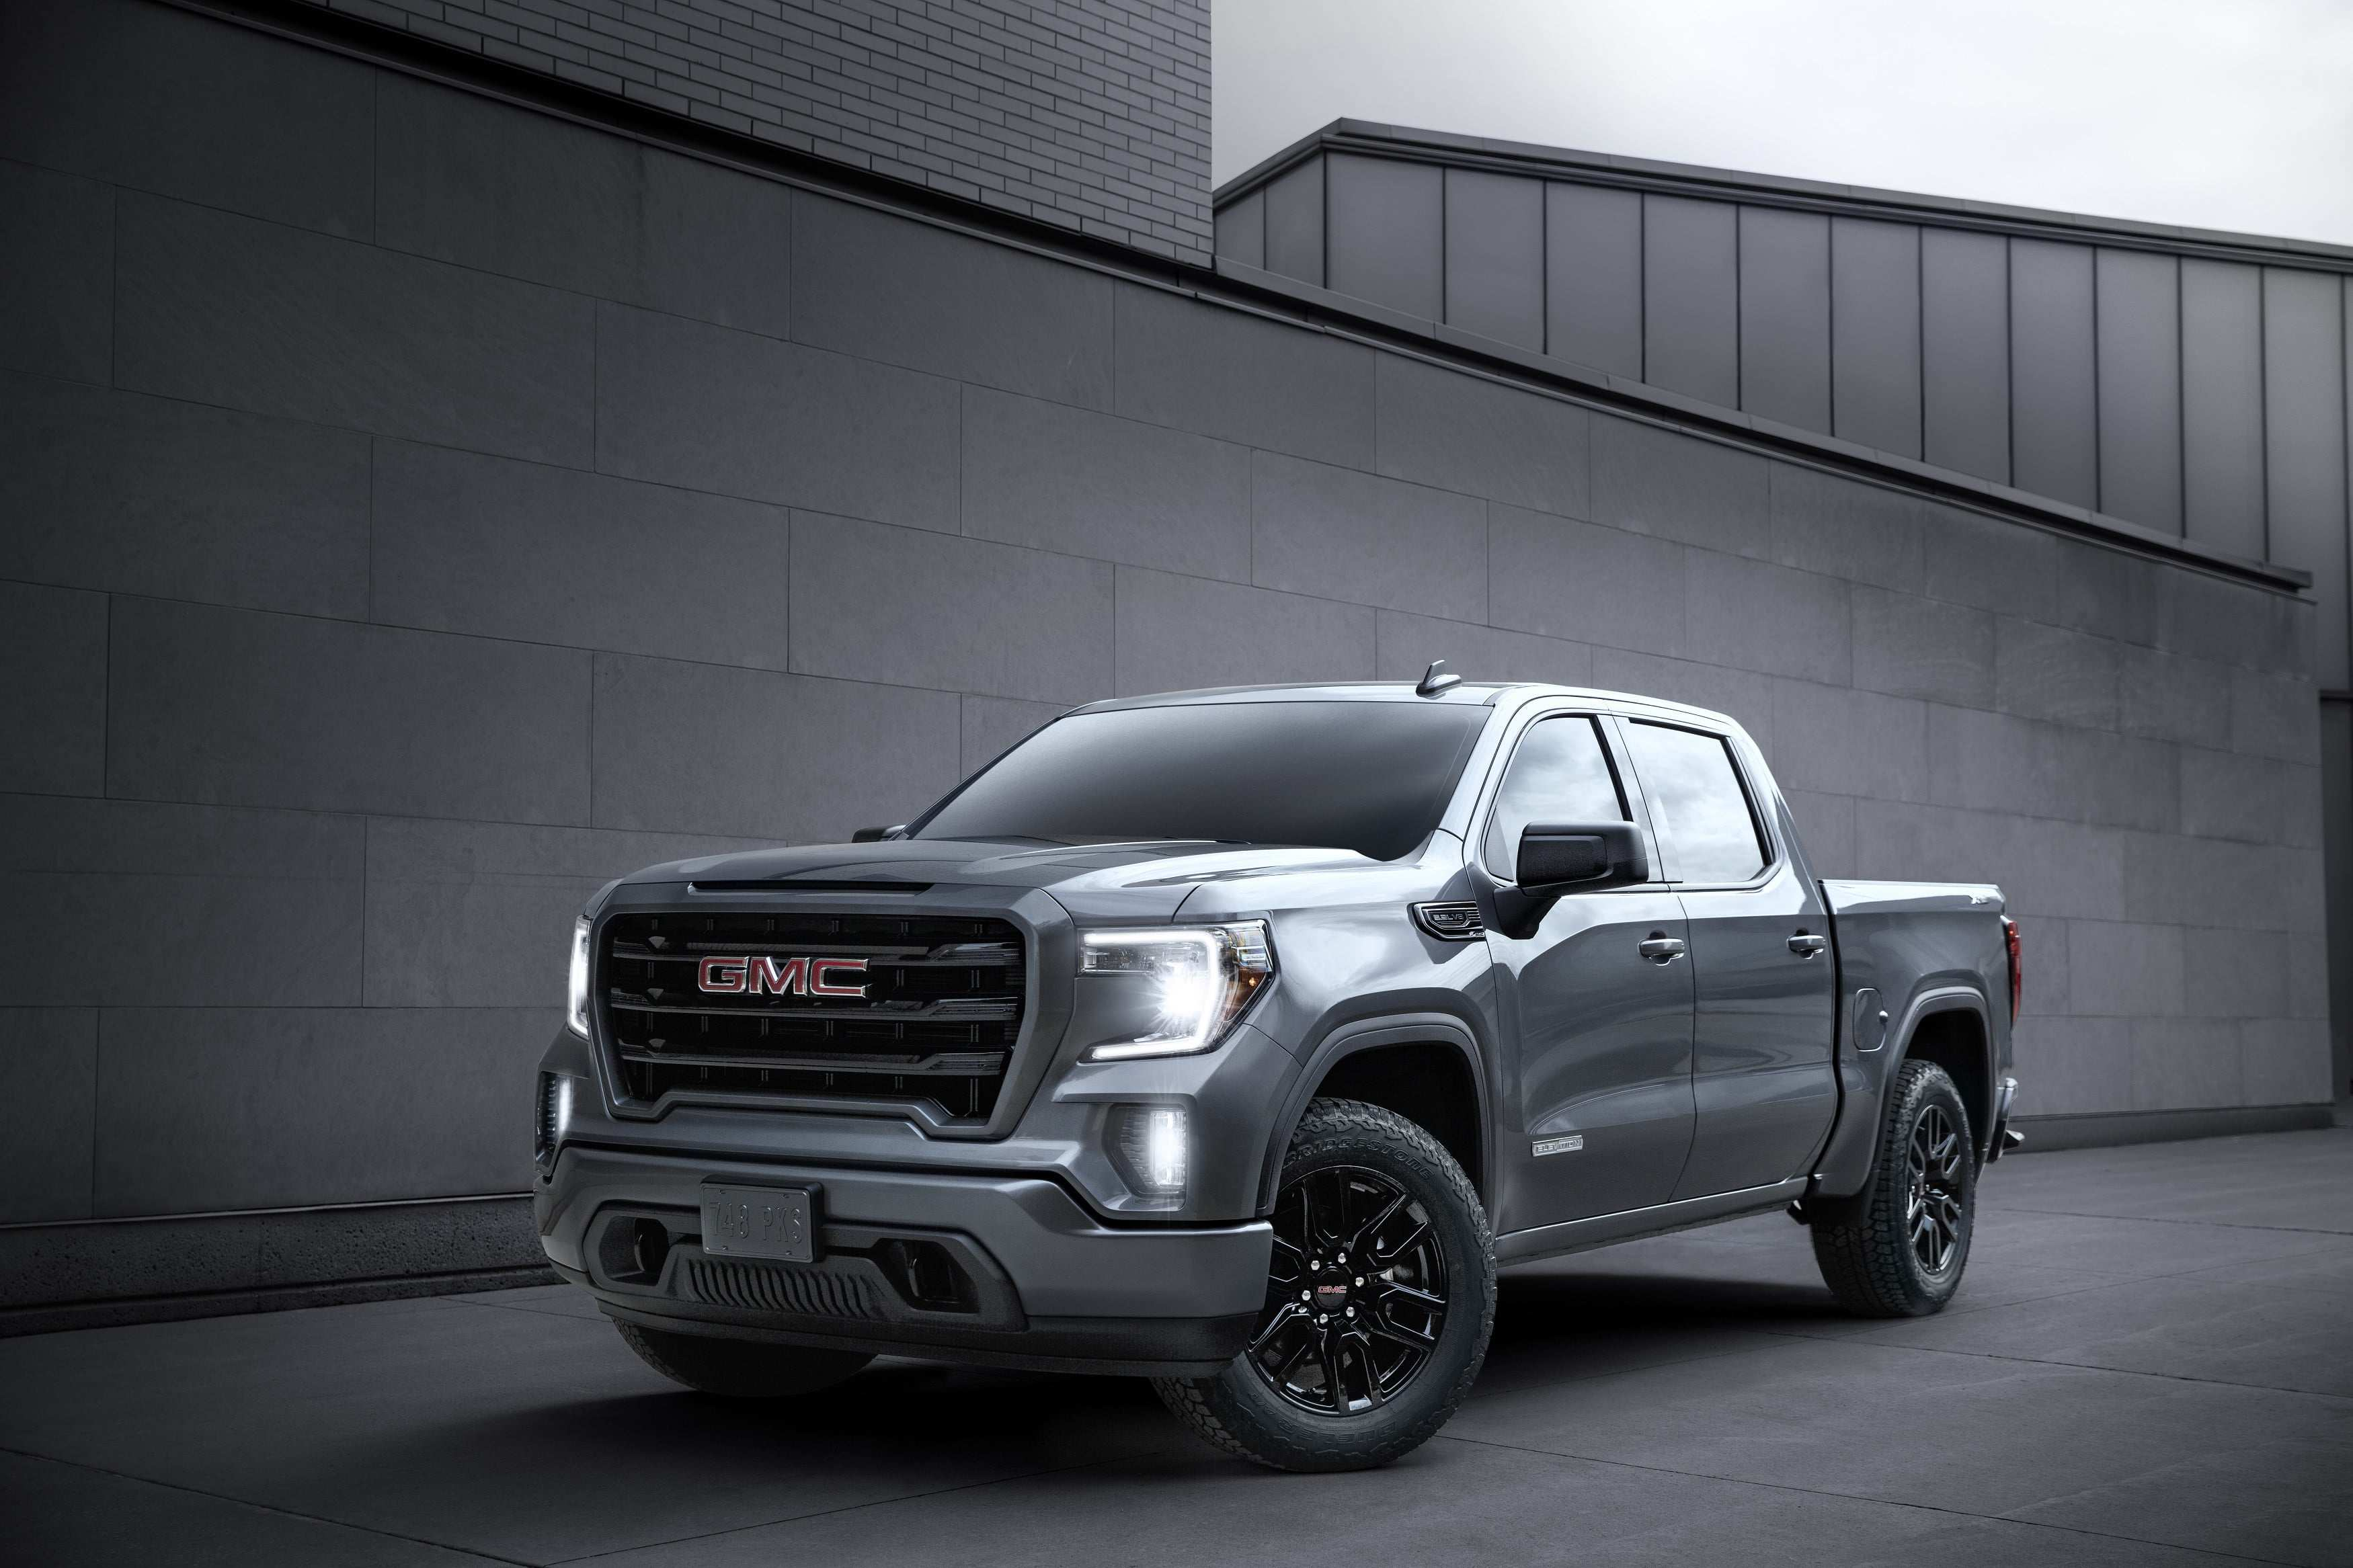 92 A 2020 Gmc Sierra Mpg Price And Release Date